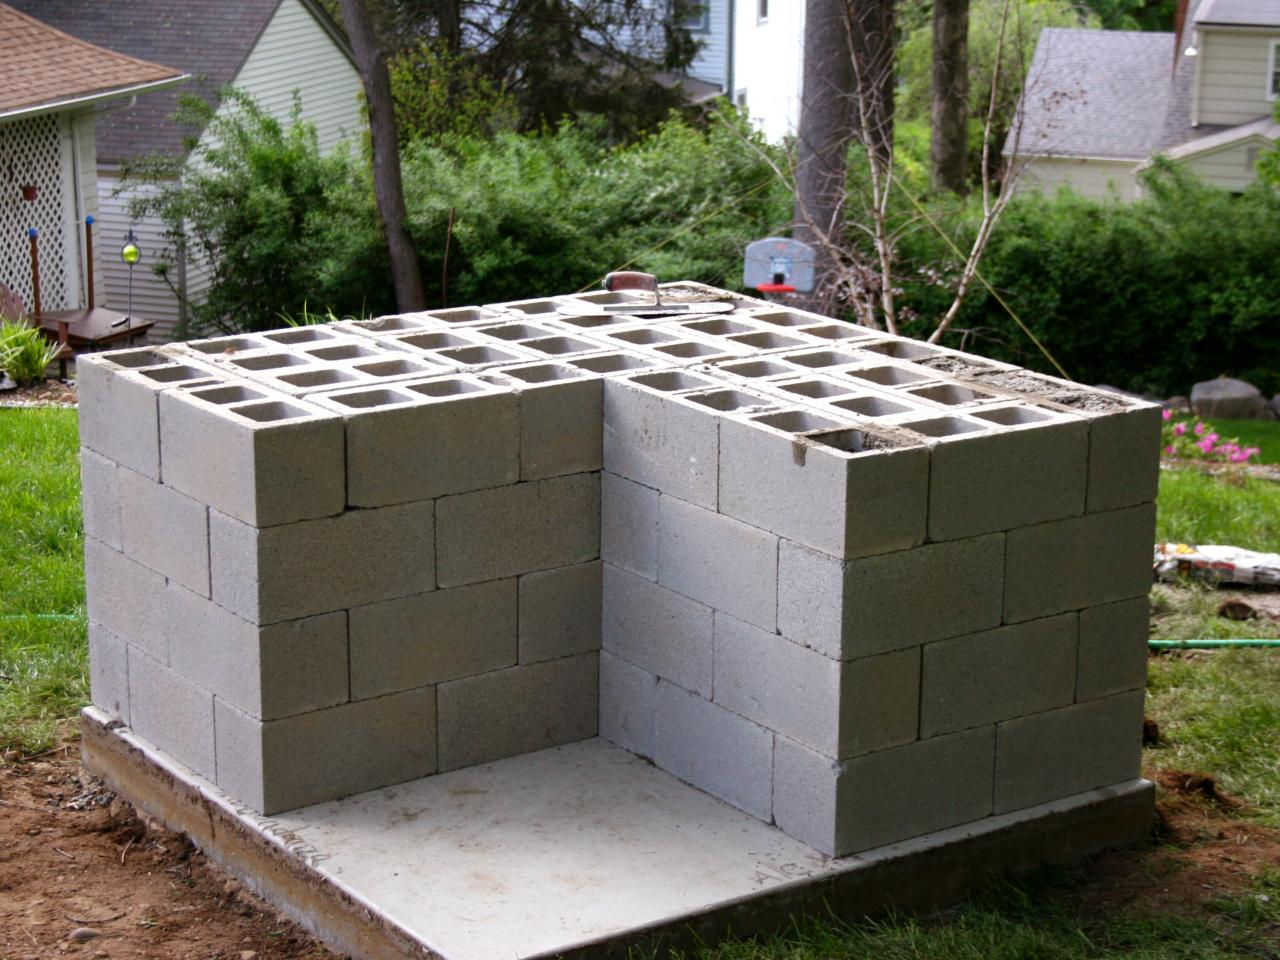 Cinder Block Outdoor Kitchen How To Build An Outdoor Pizza Oven Hgtv